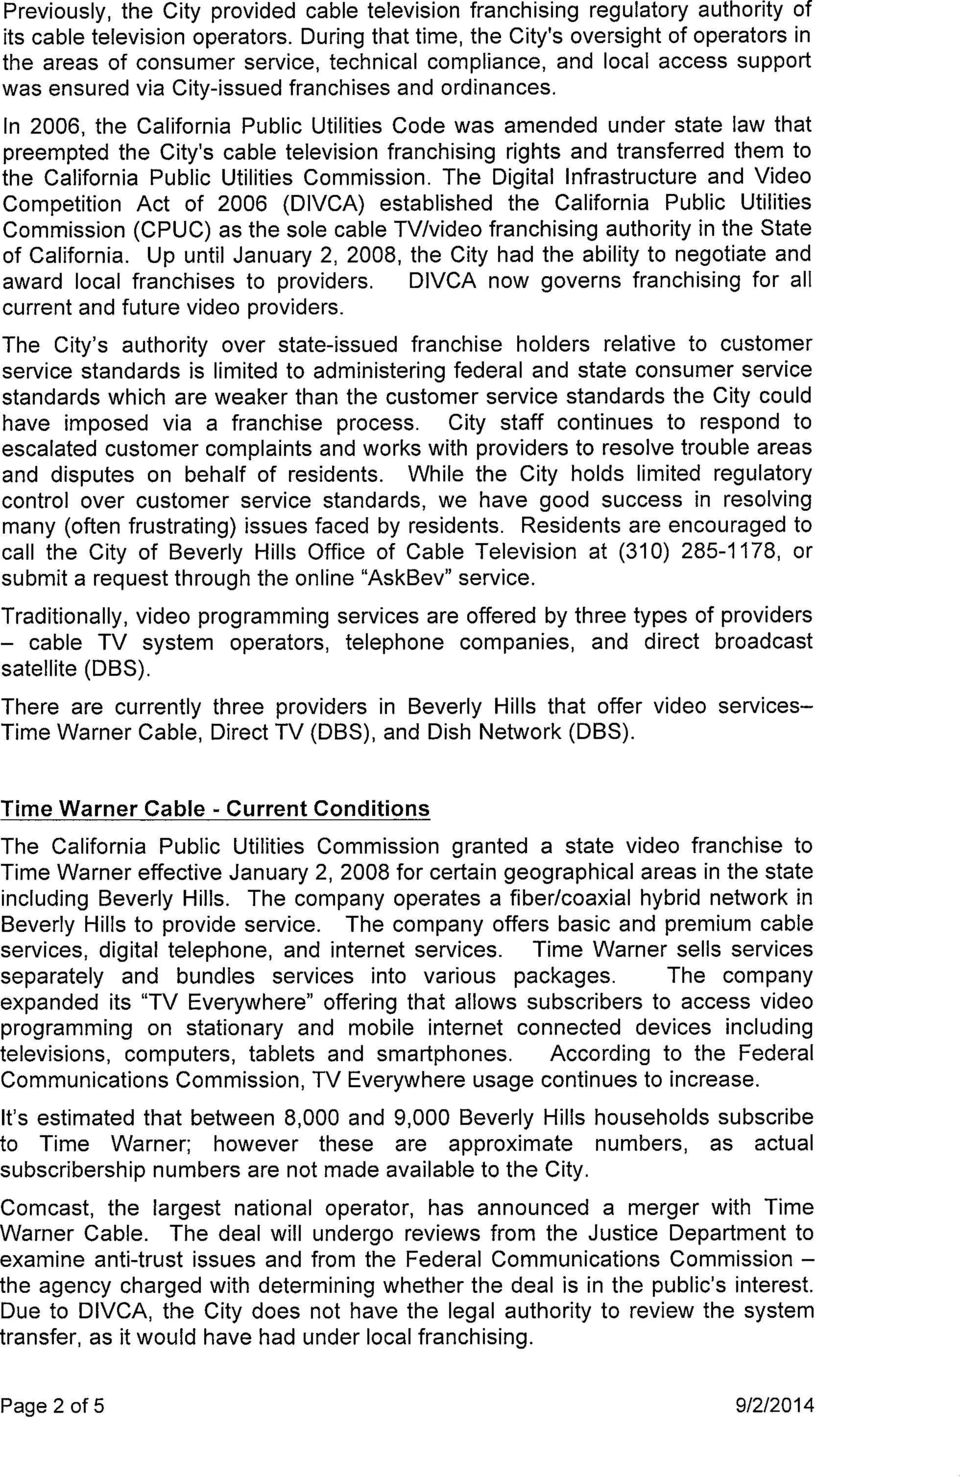 In 2006, the California Public Utilities Code was amended under state law that preempted the City s cable television franchising rights and transferred them to the California Public Utilities